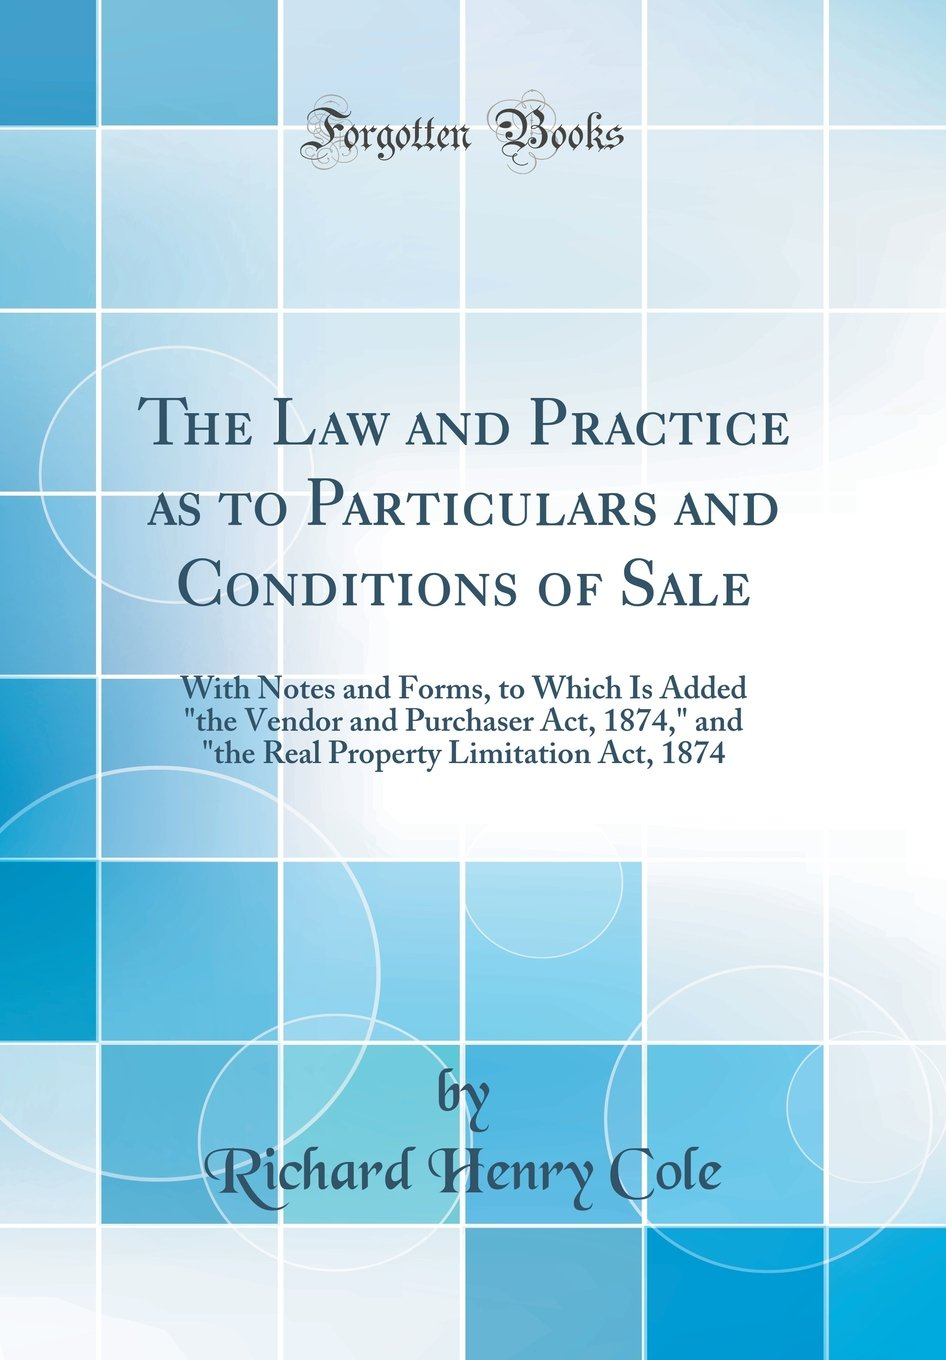 """Read Online The Law and Practice as to Particulars and Conditions of Sale: With Notes and Forms, to Which Is Added the Vendor and Purchaser Act, 1874,"""" and the Limitation Act, 1874 (Classic Reprint) PDF"""